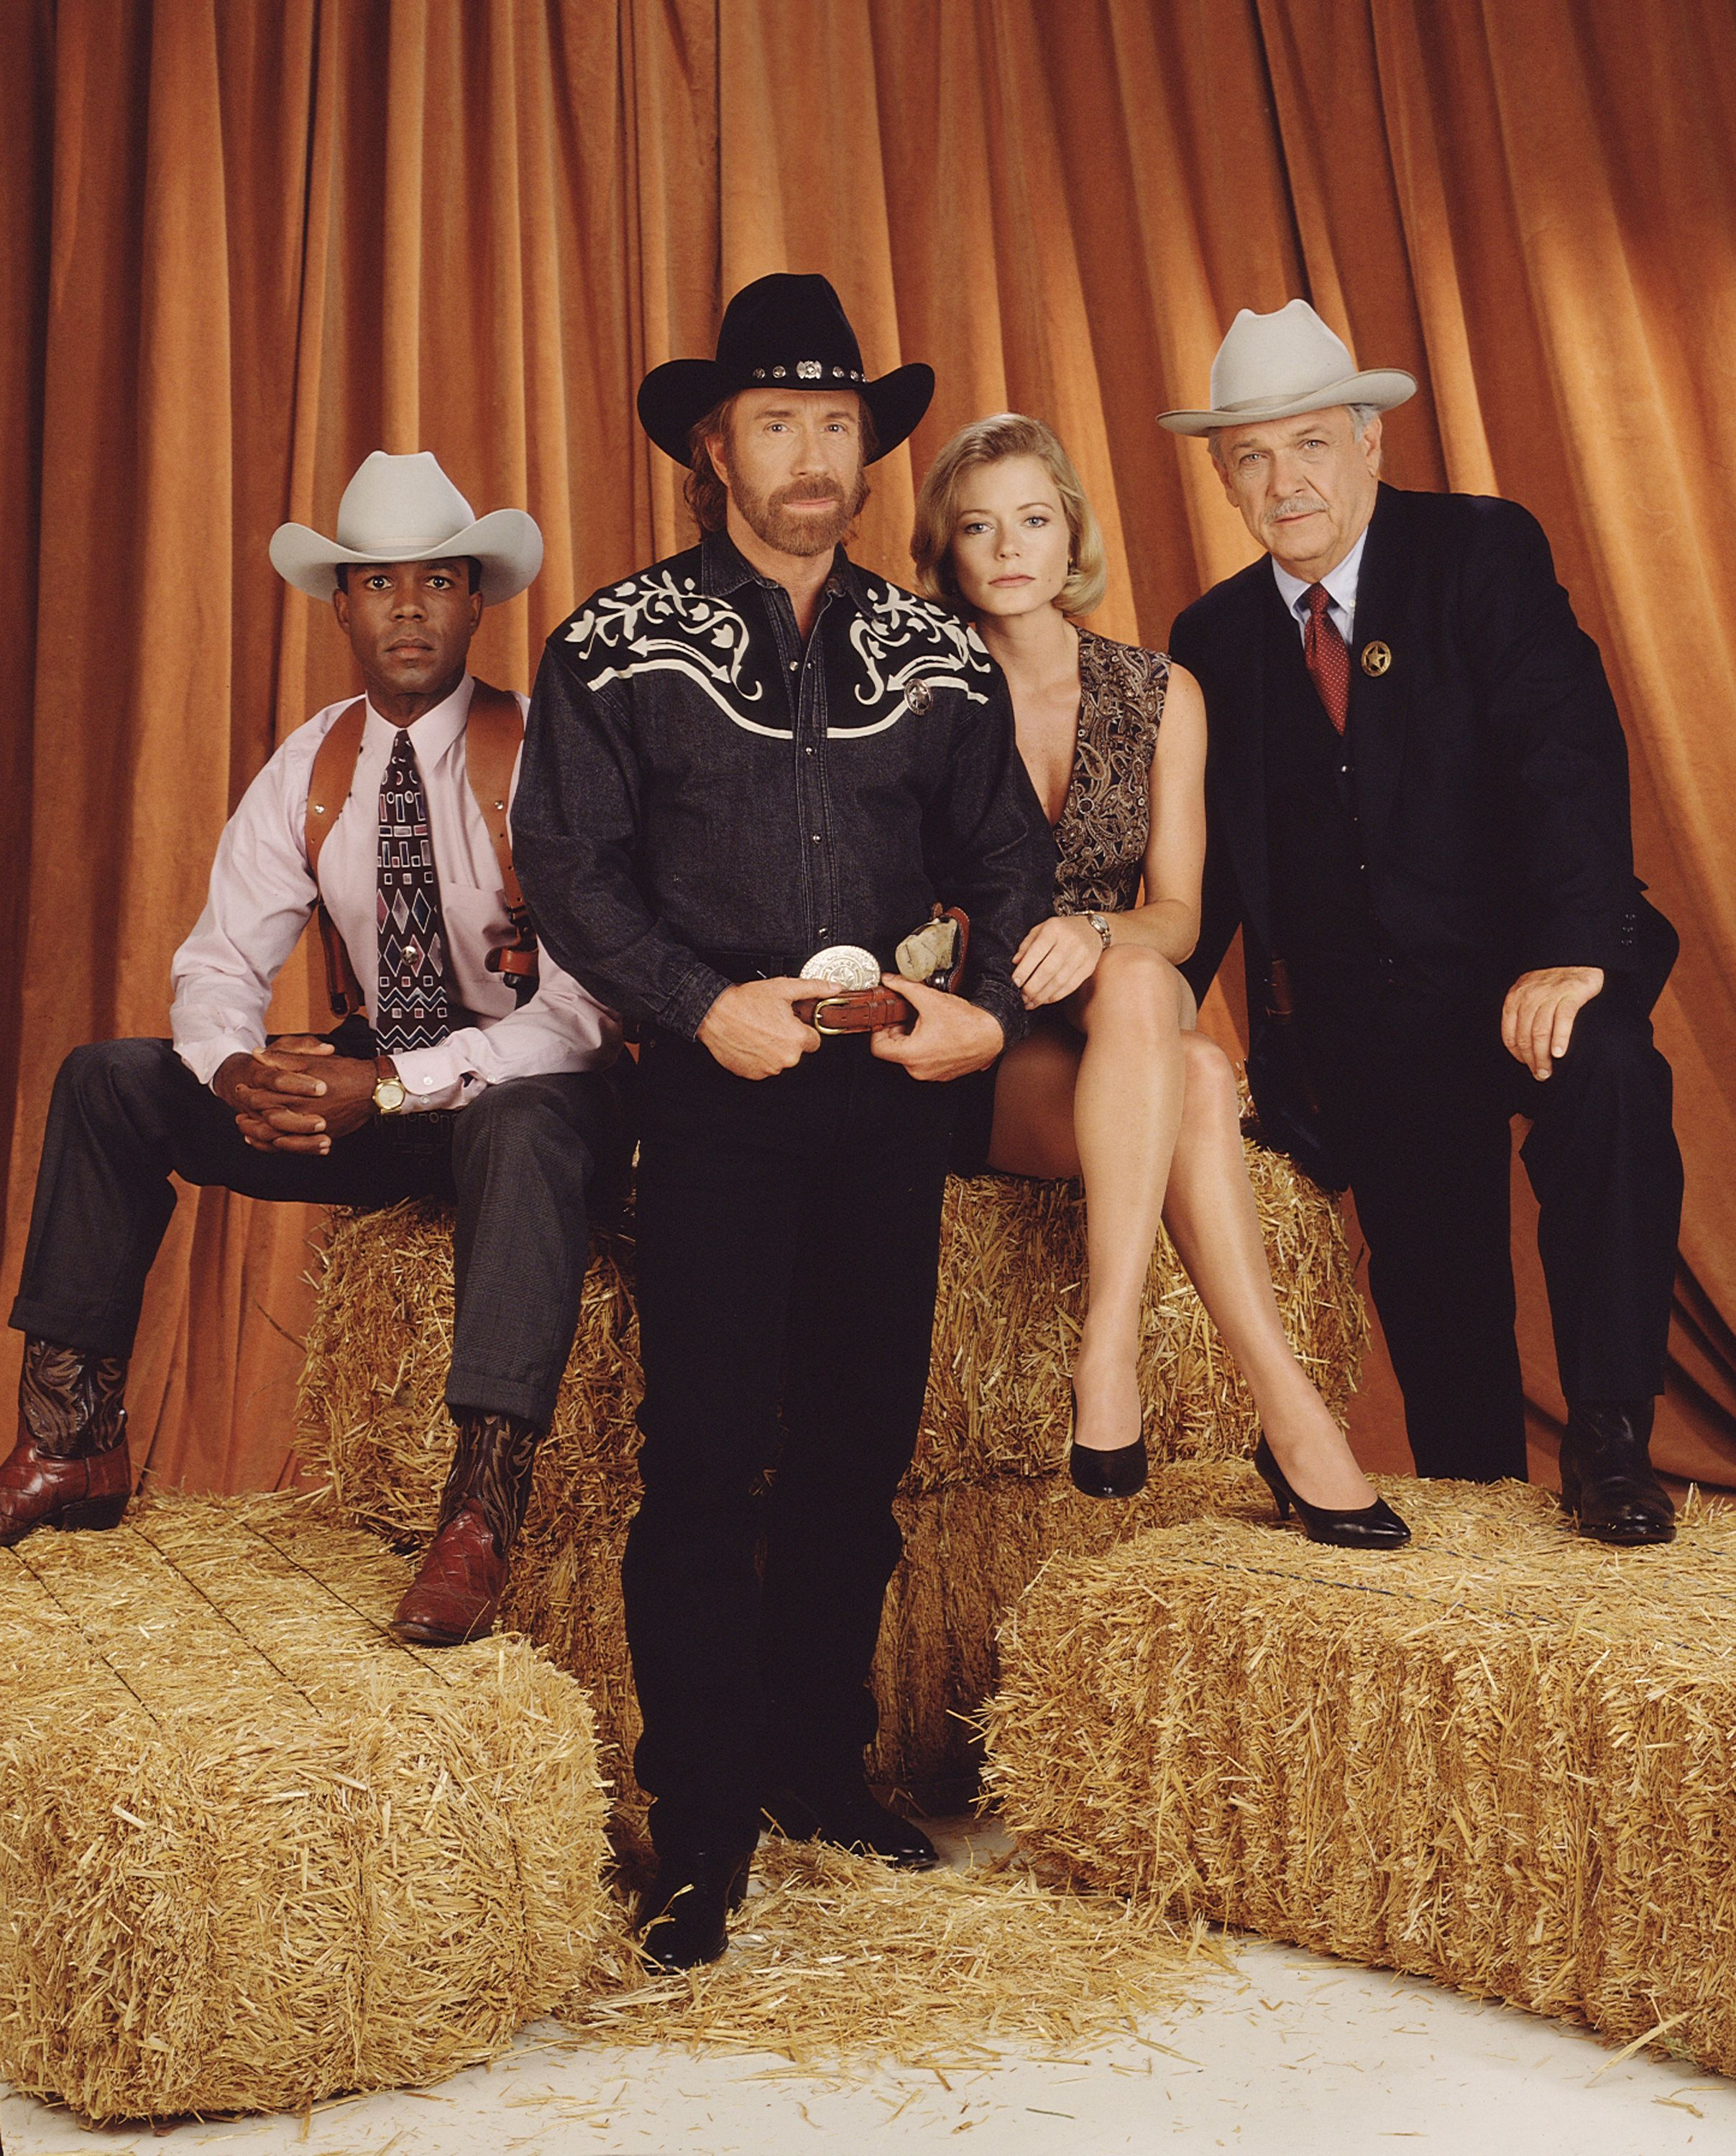 """Walker, Texas Ranger"" cast (L-R) Clarence Gilyard Jr. (as James Trivette), Chuck Norris (as Cordell Walker), Sheree J. Wilson (as Alex Cahill), and Noble Willingham (as C.D. Parker). January 1, 1995. 